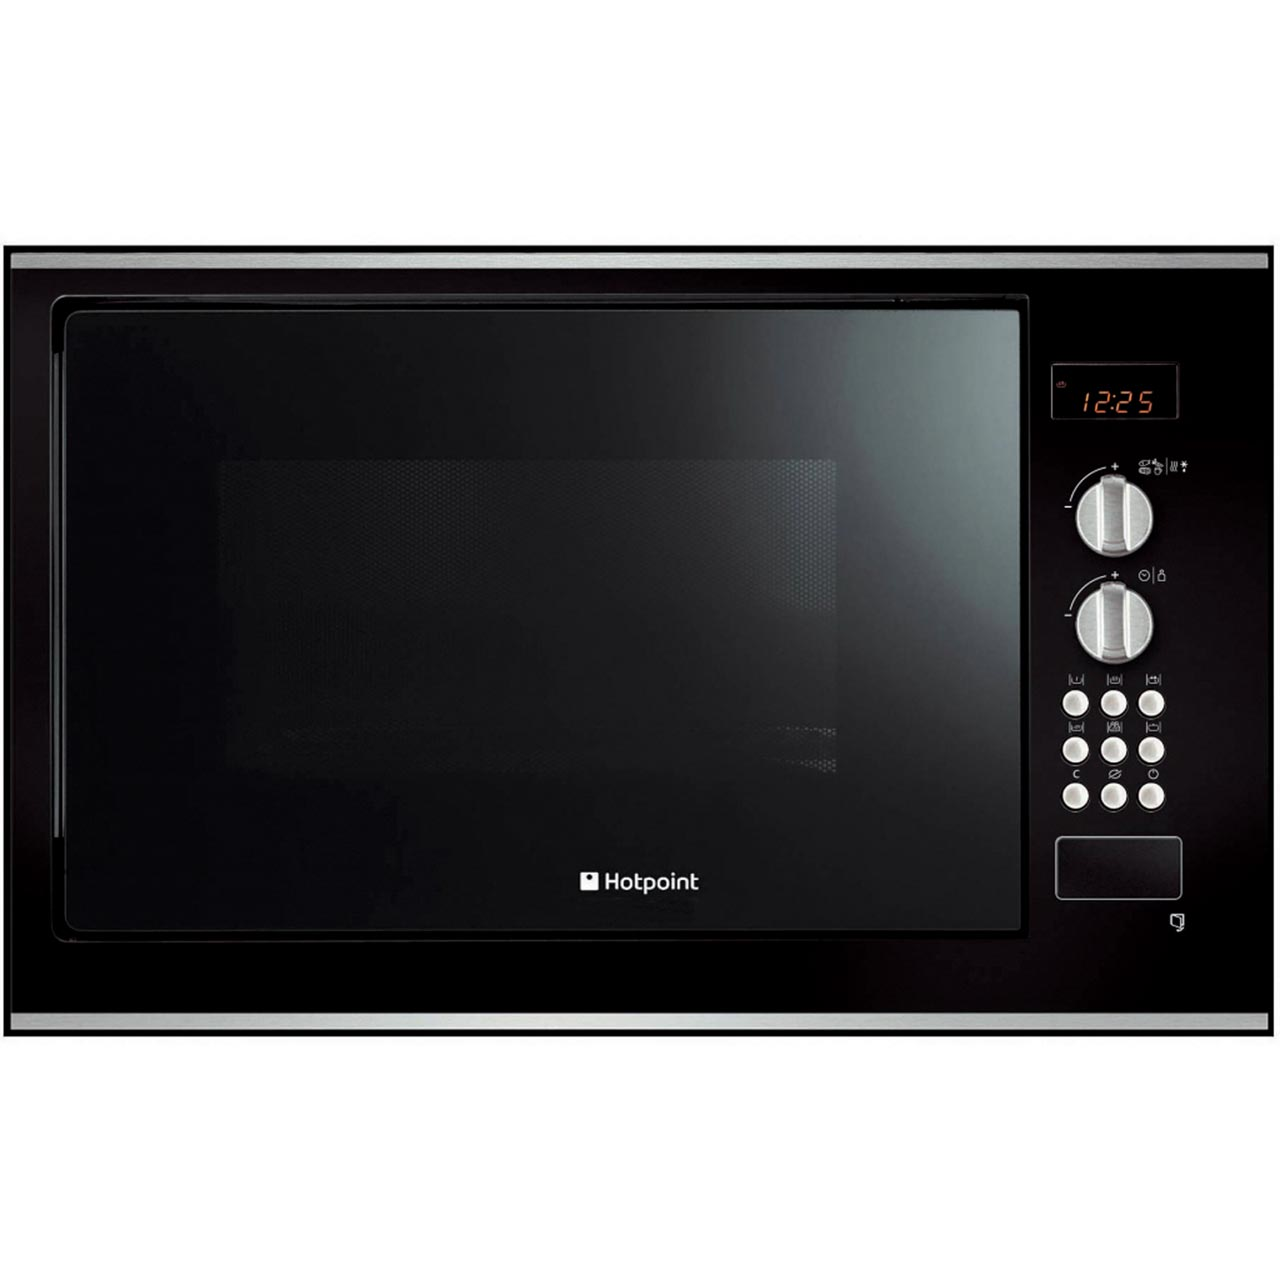 Hotpoint MWX222.1X Built In Microwave review